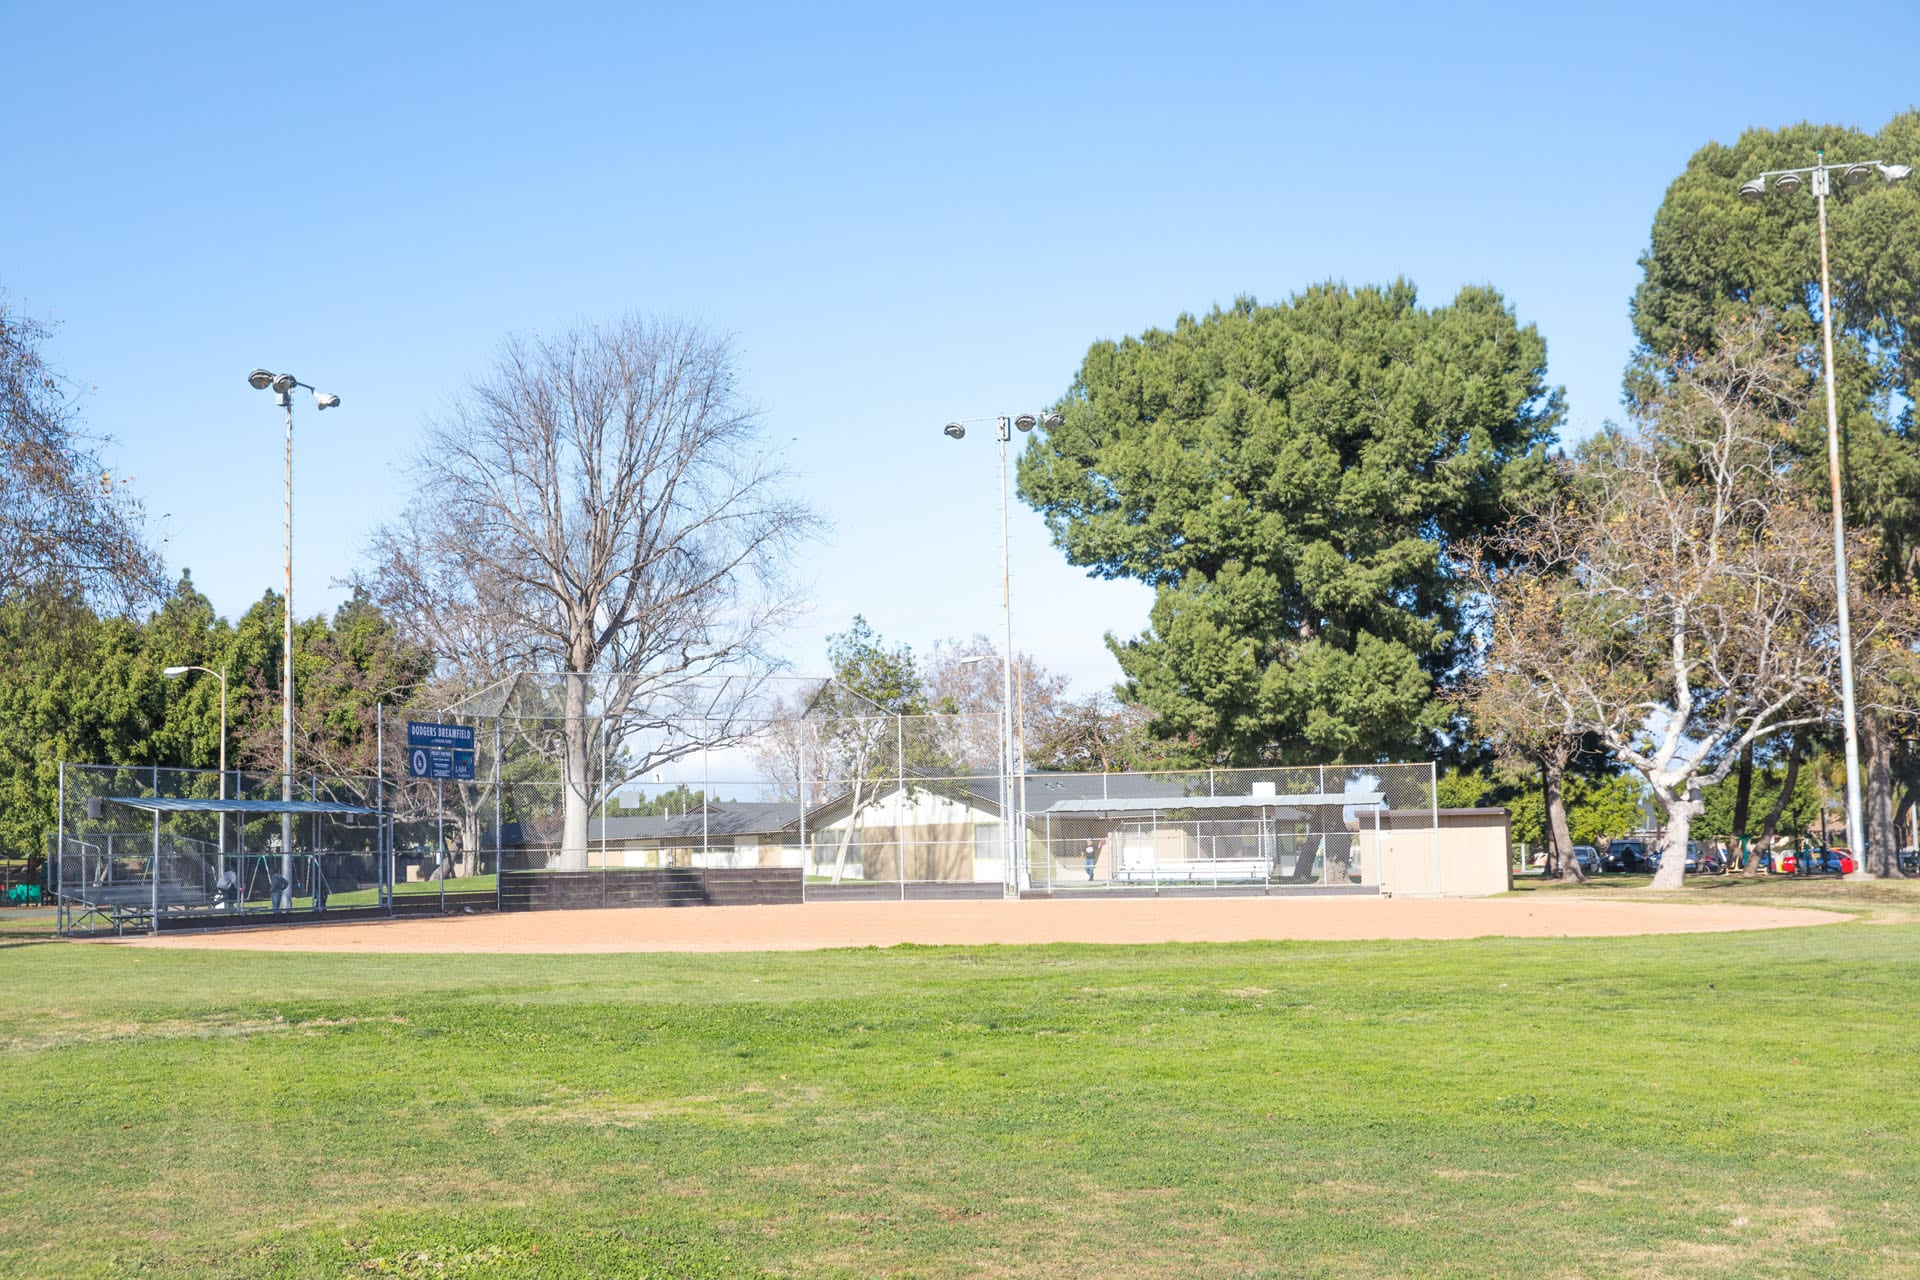 Athens Park whole baseball field